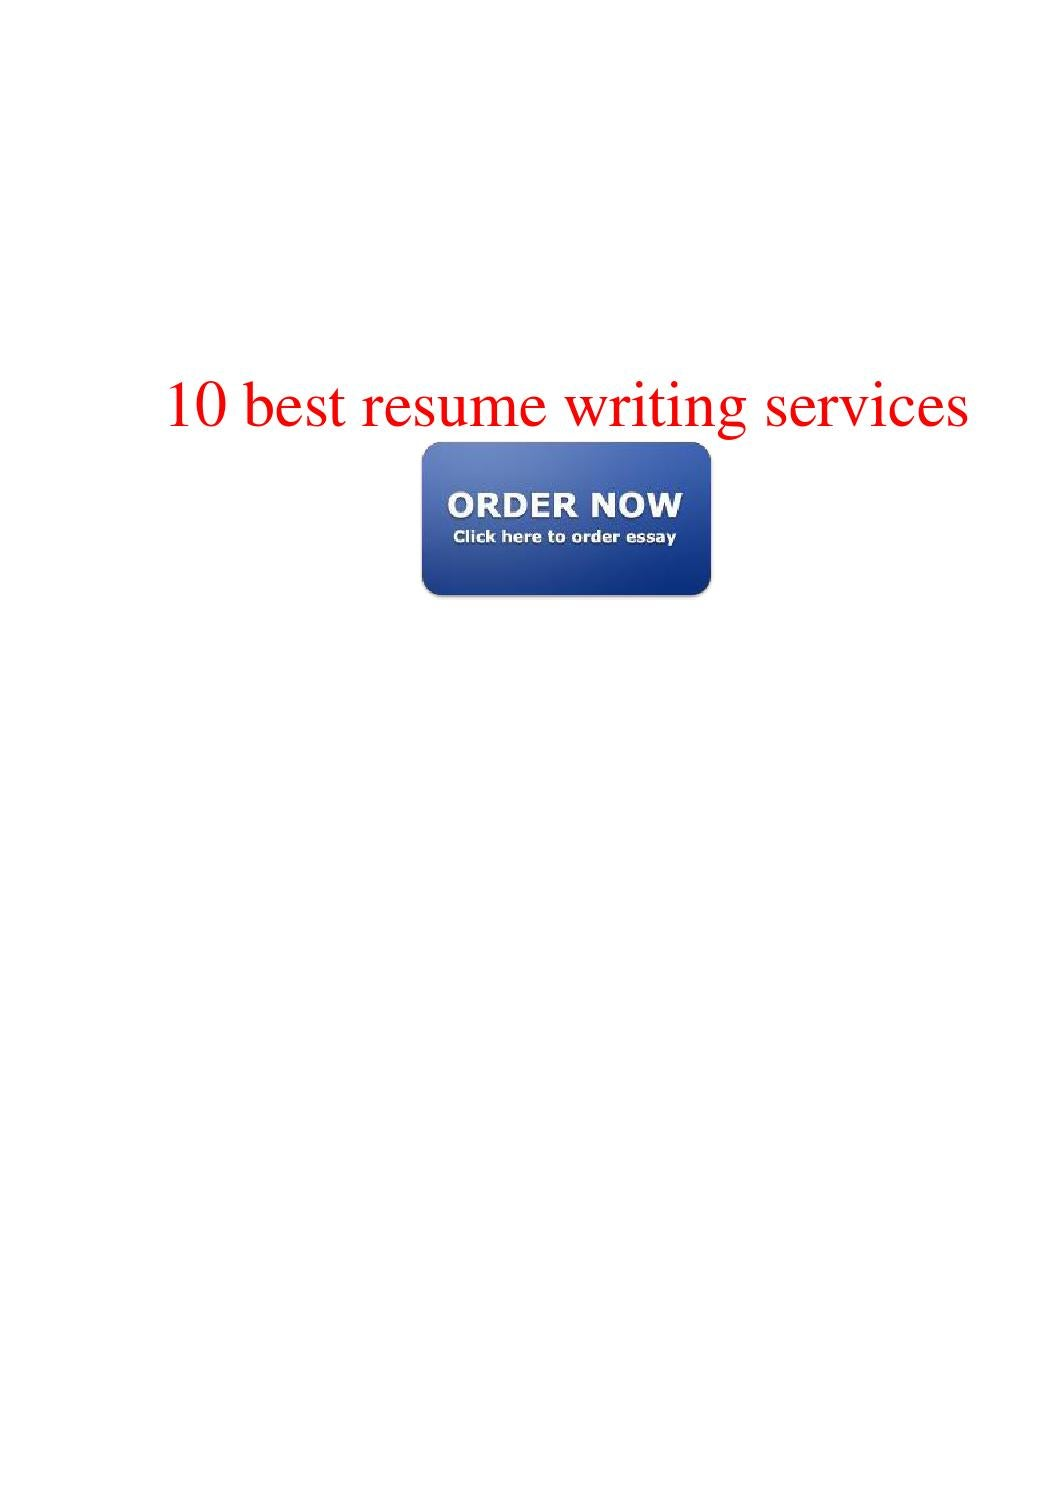 10 best resume writing service singapore